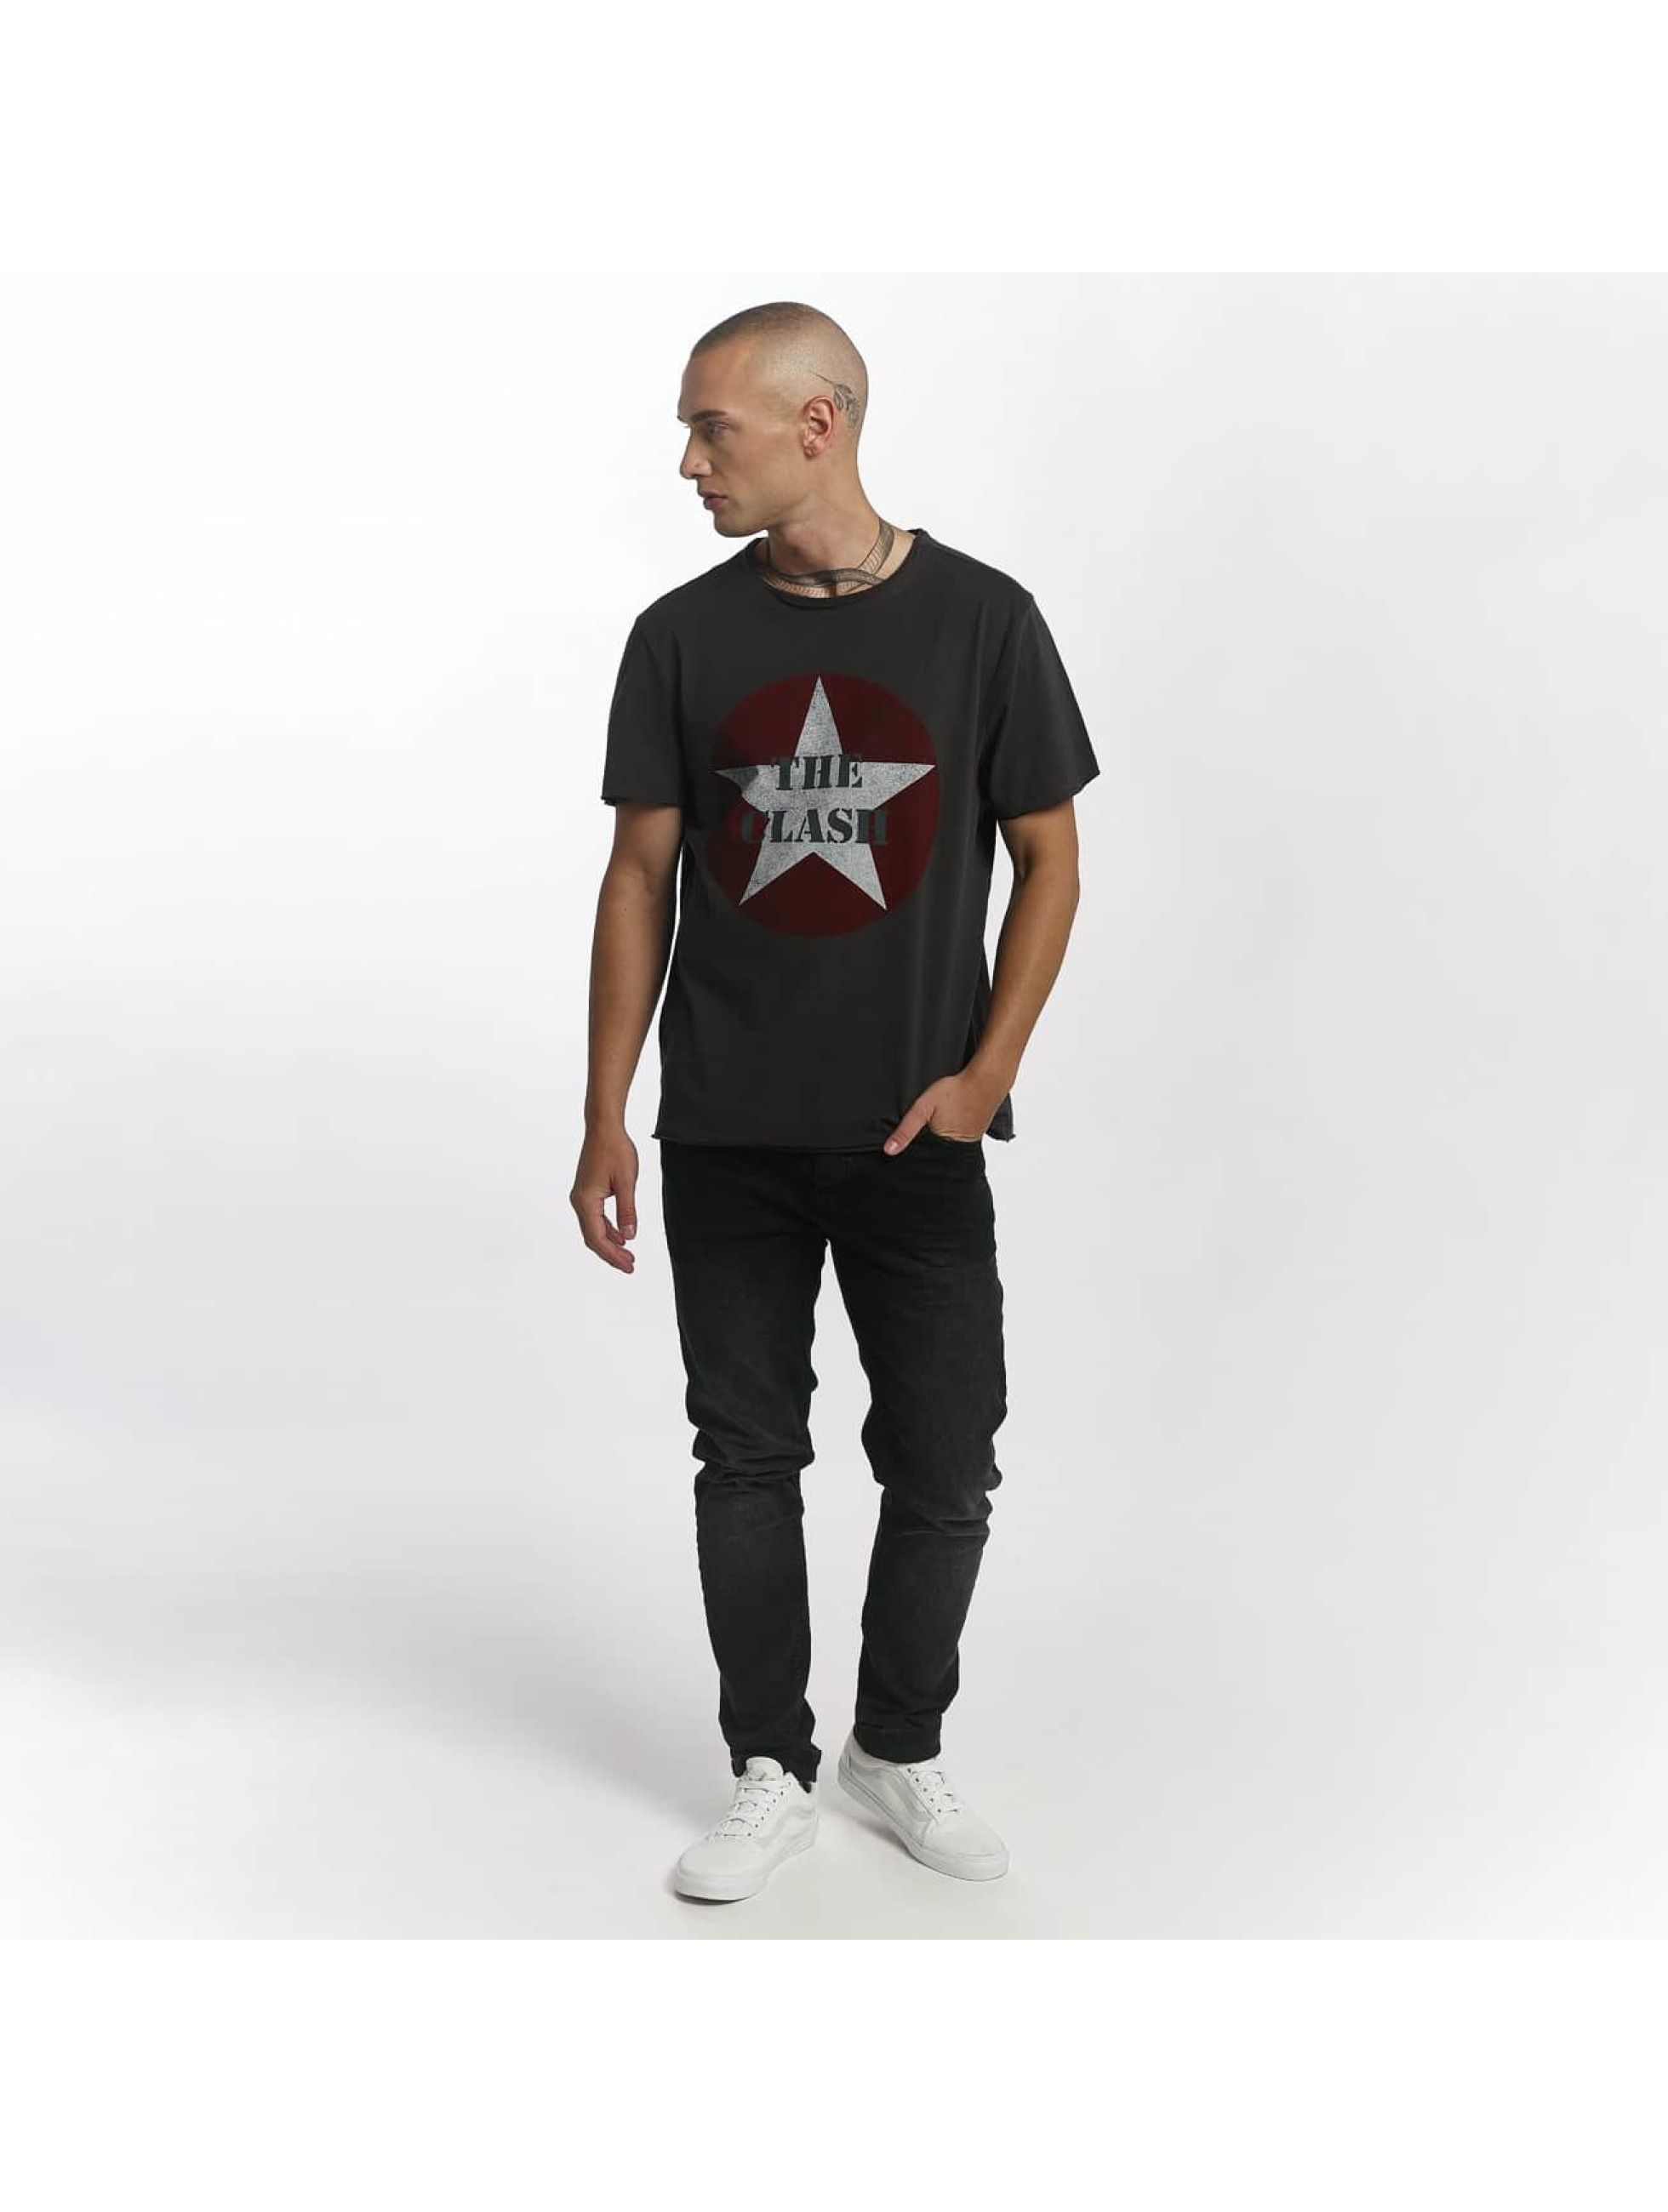 Amplified T-Shirt The Clash Star Logo grau